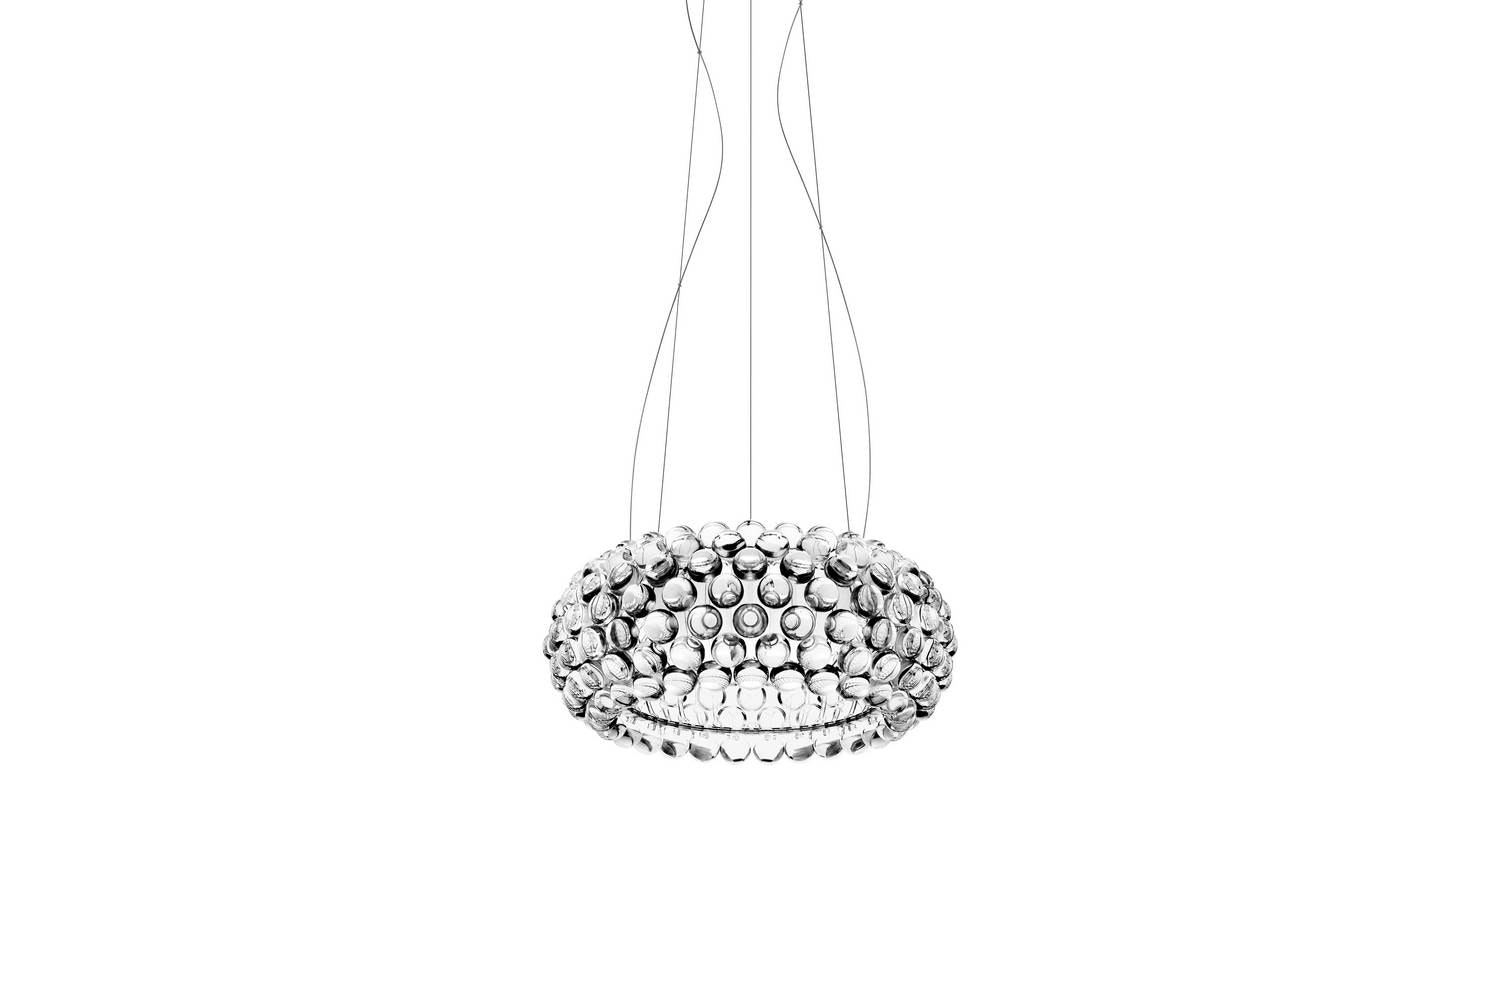 Caboche Media LED Dimmable Suspension Lamp by Patricia Urquiola & Eliana Gerotto for Foscarini